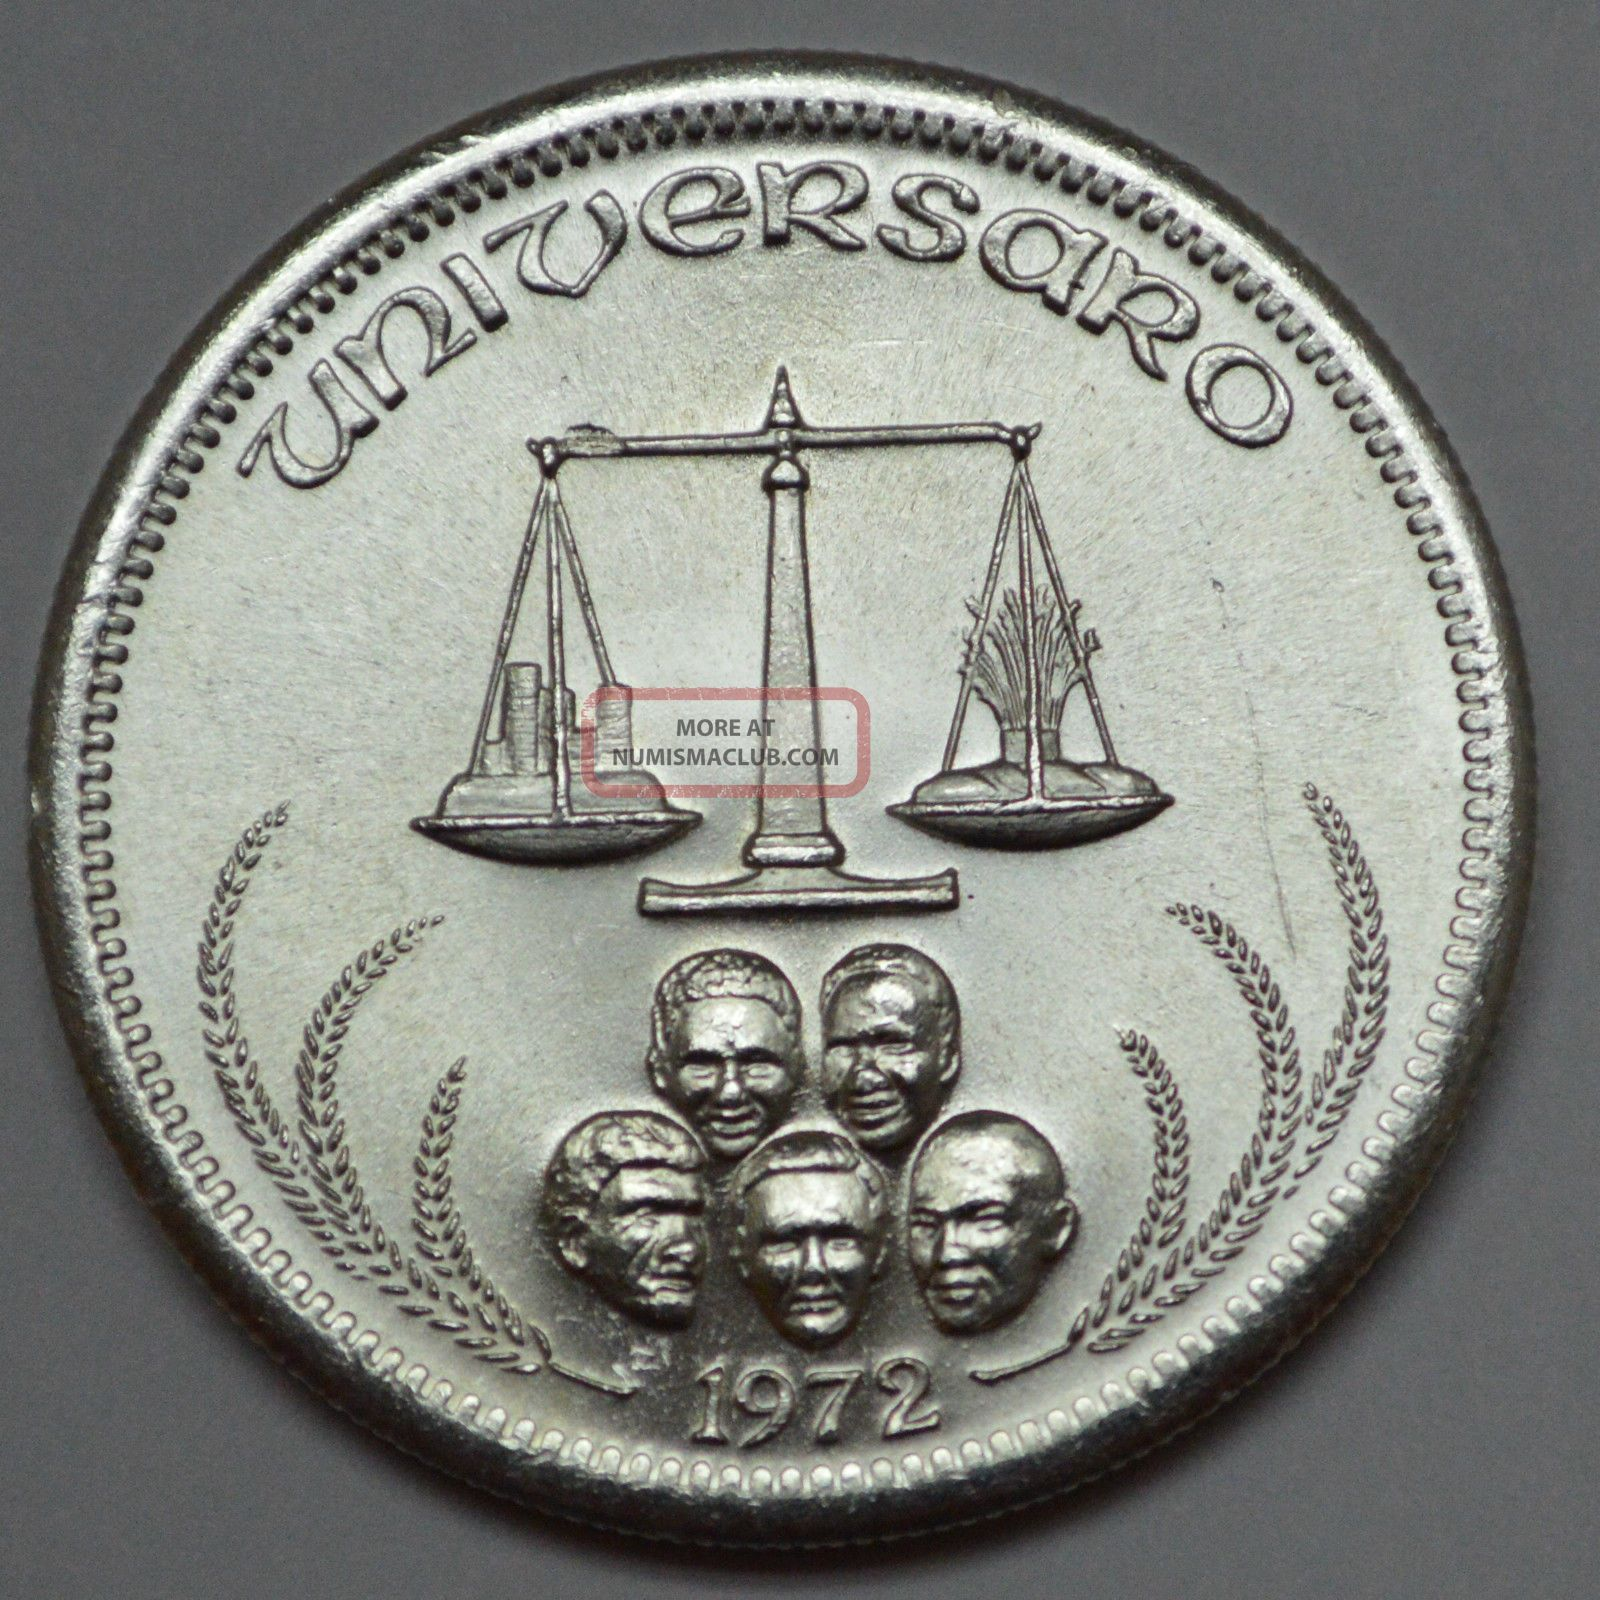 1972 Universaro One Silver World Trade 1 Oz 999 Silver 1